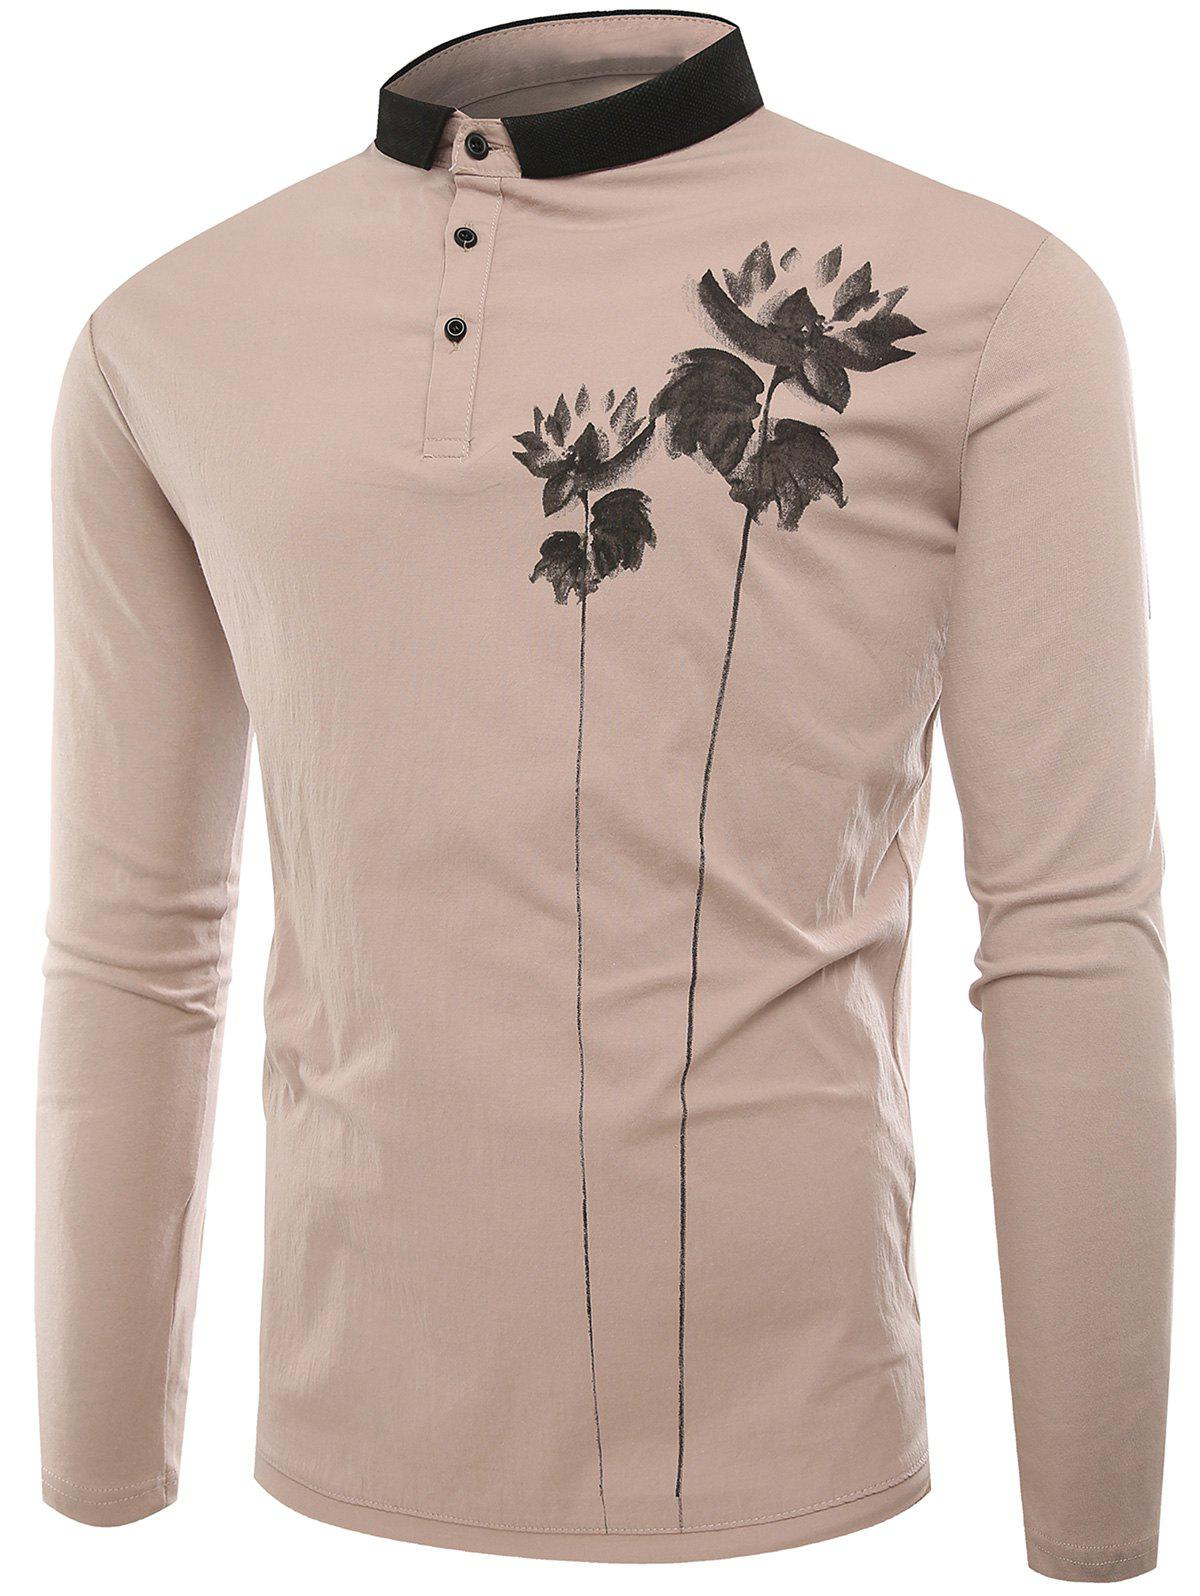 Buttons Lotus Print Polo T-shirt - APRICOT L